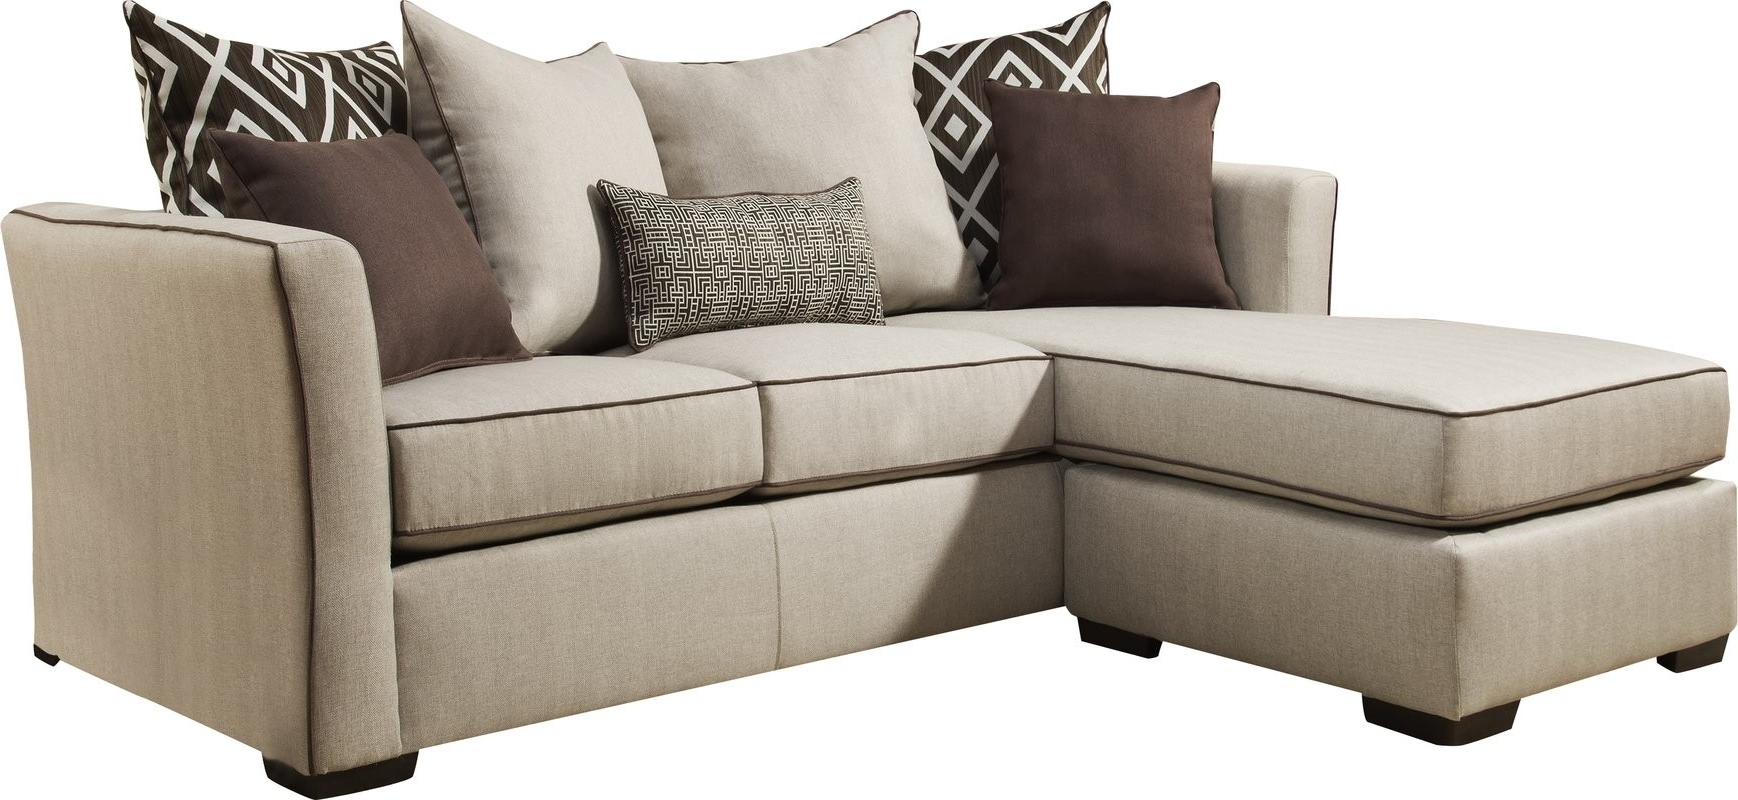 Joss And Main Sectional Sofas Pertaining To 2019 Elegant Simmons Sectional Sofa Joss And Main – Mediasupload (View 16 of 20)